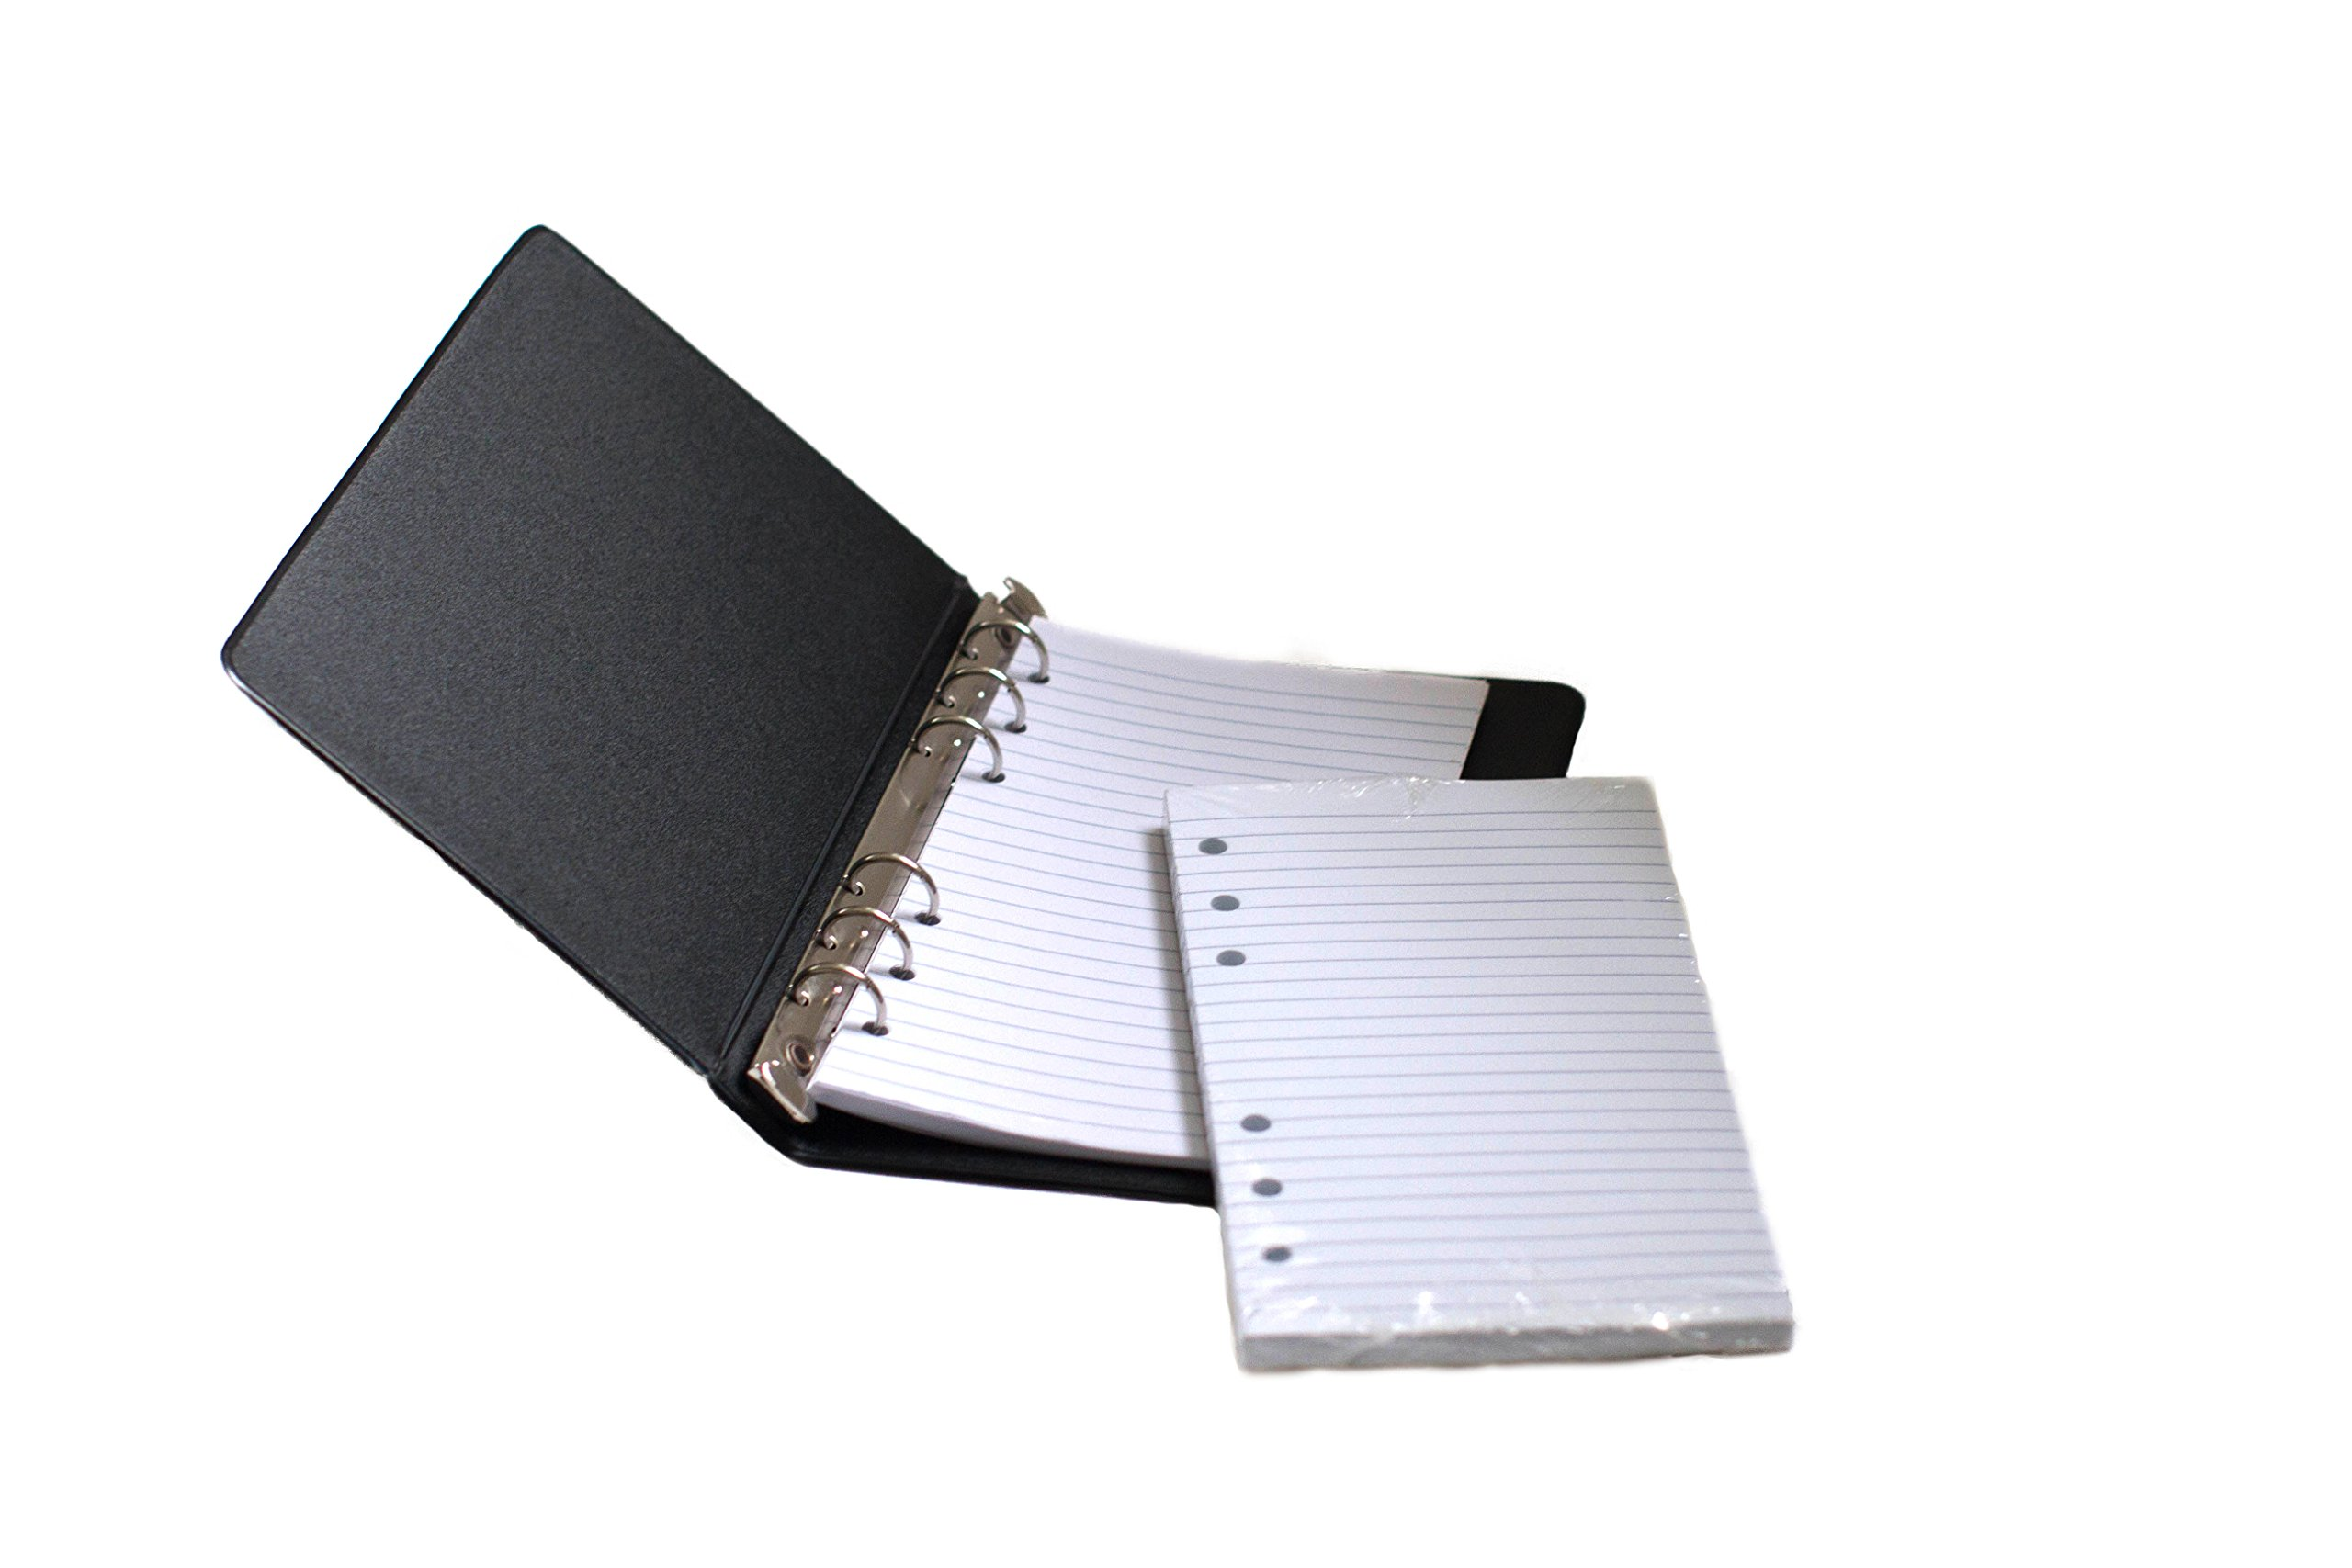 HNR essentials Loose-Leaf Memo Book, 6 3/4 x 3 3/4'', 6-Ring Binder, 80 Pages + Free Refill 80 Pages